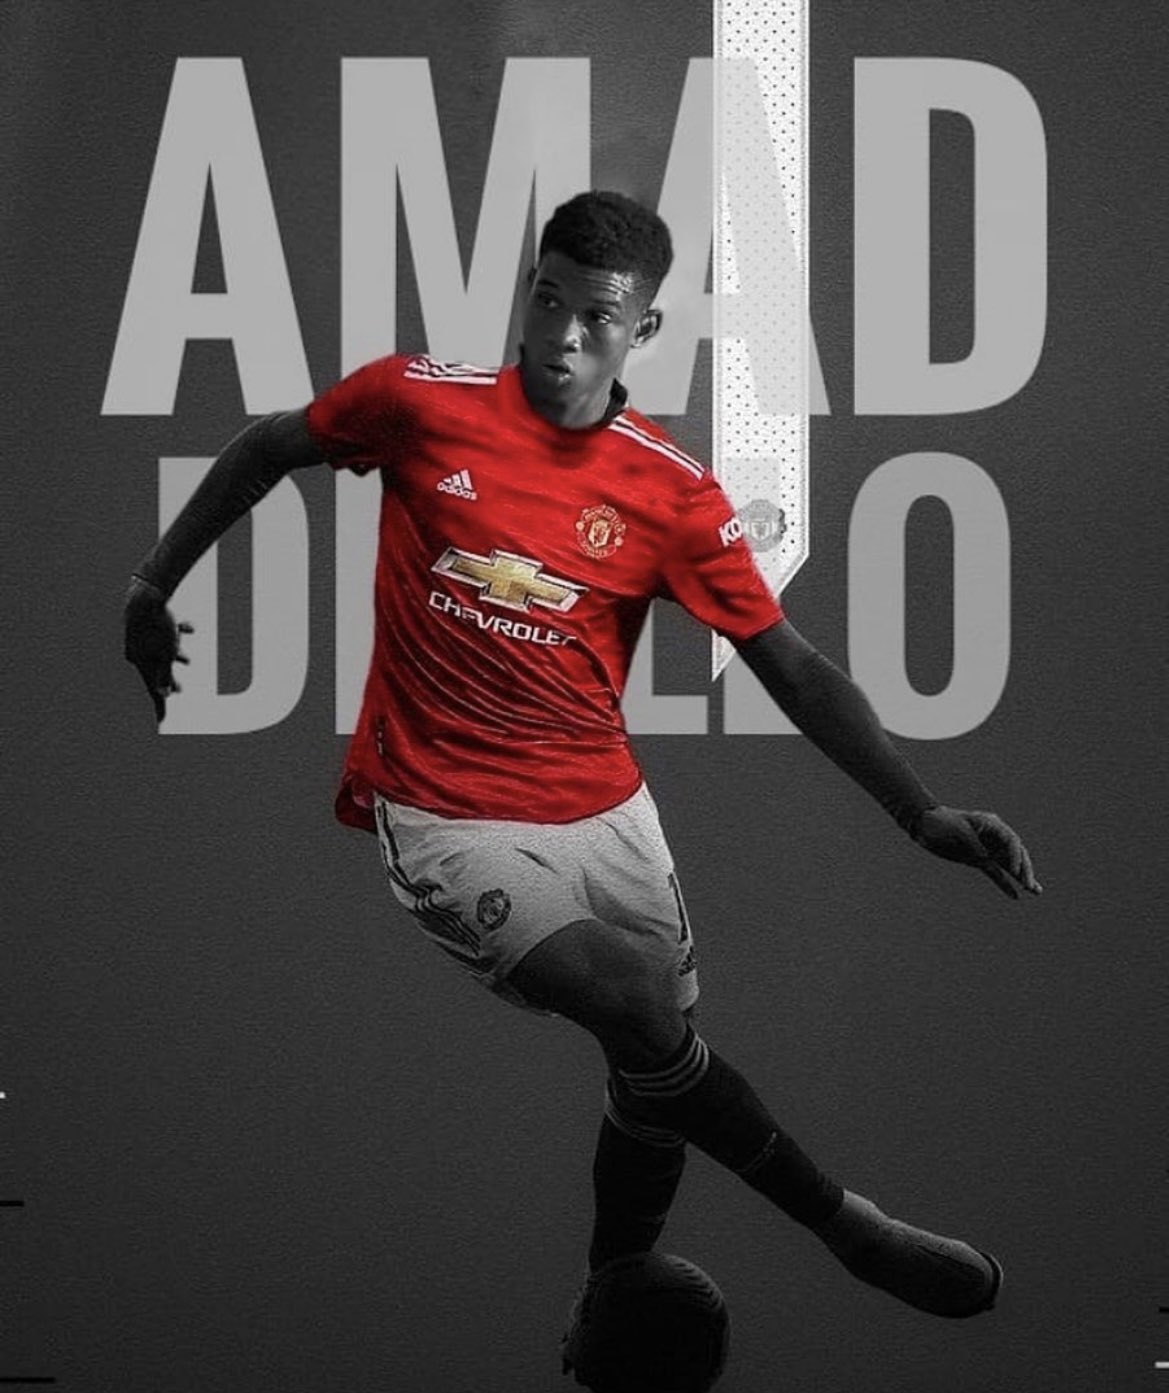 Can't Wait To Start! Amad Diallo Says As ManU Completes Signing